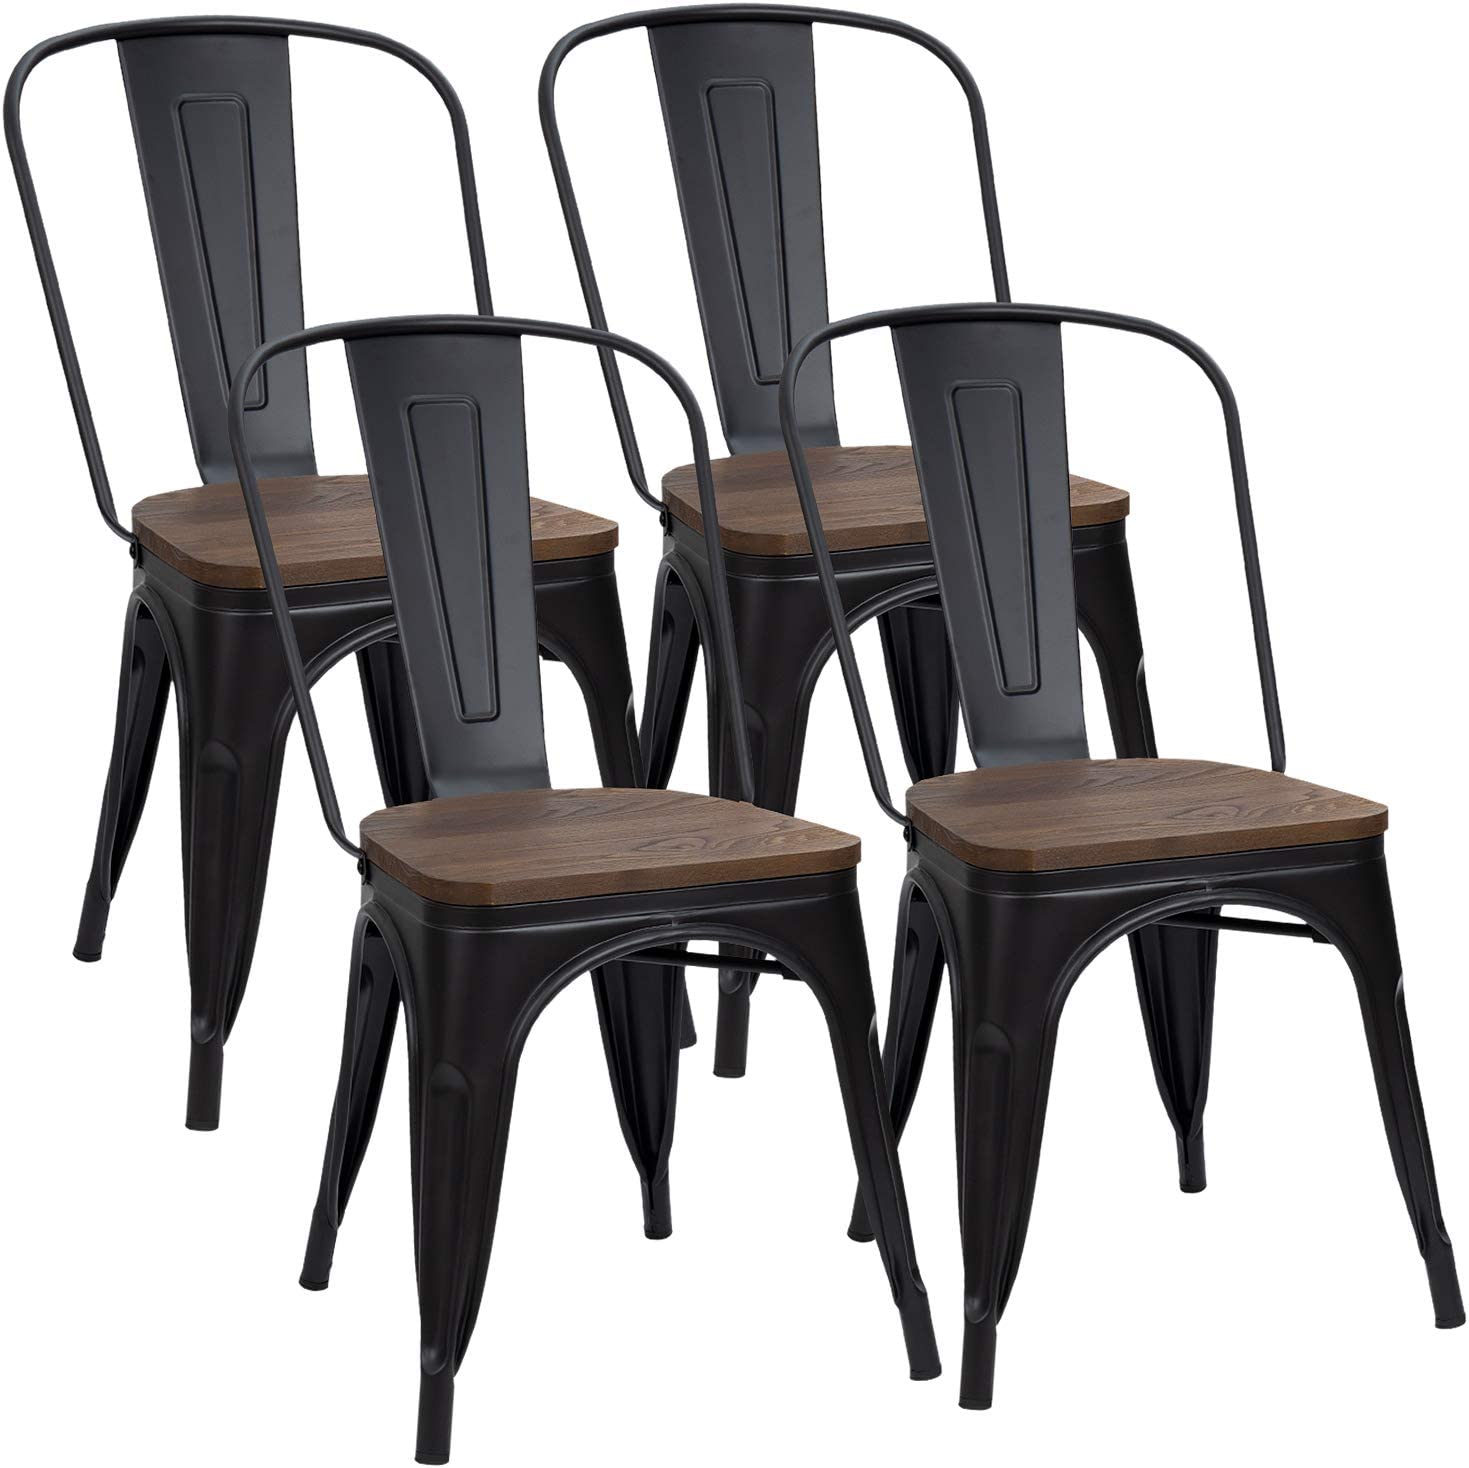 Furmax Metal Dining Chair Indoor-Outdoor Use Stackable Chic Dining Bistro  Cafe Side Metal Chairs Set of 9(Black)